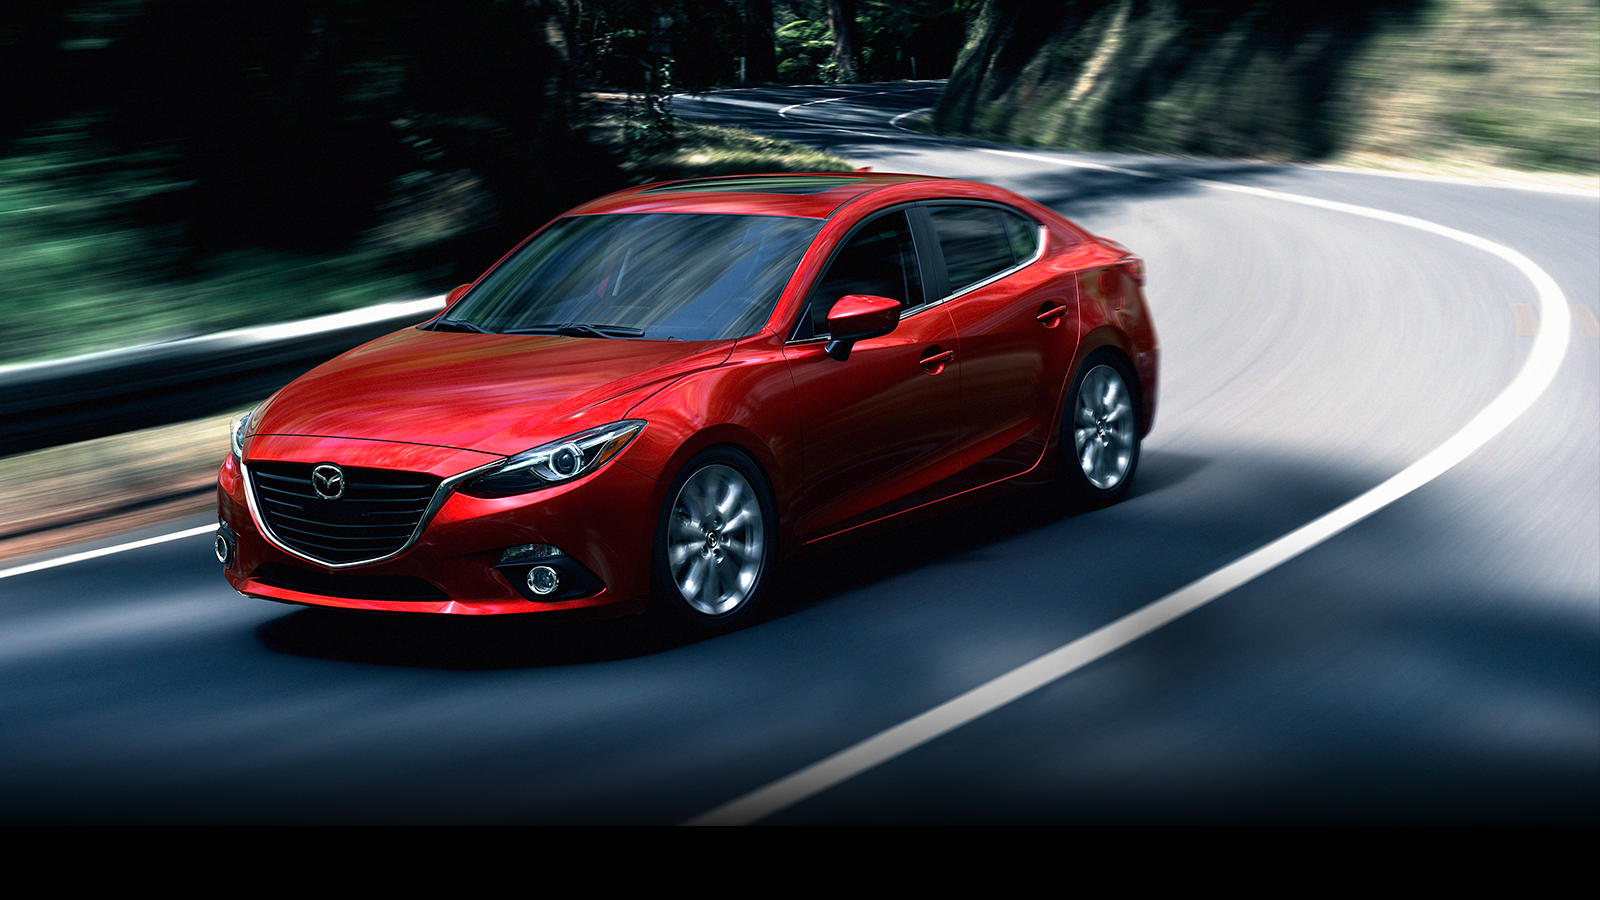 mazda 3 2015 specification, Price, Release Date, Review